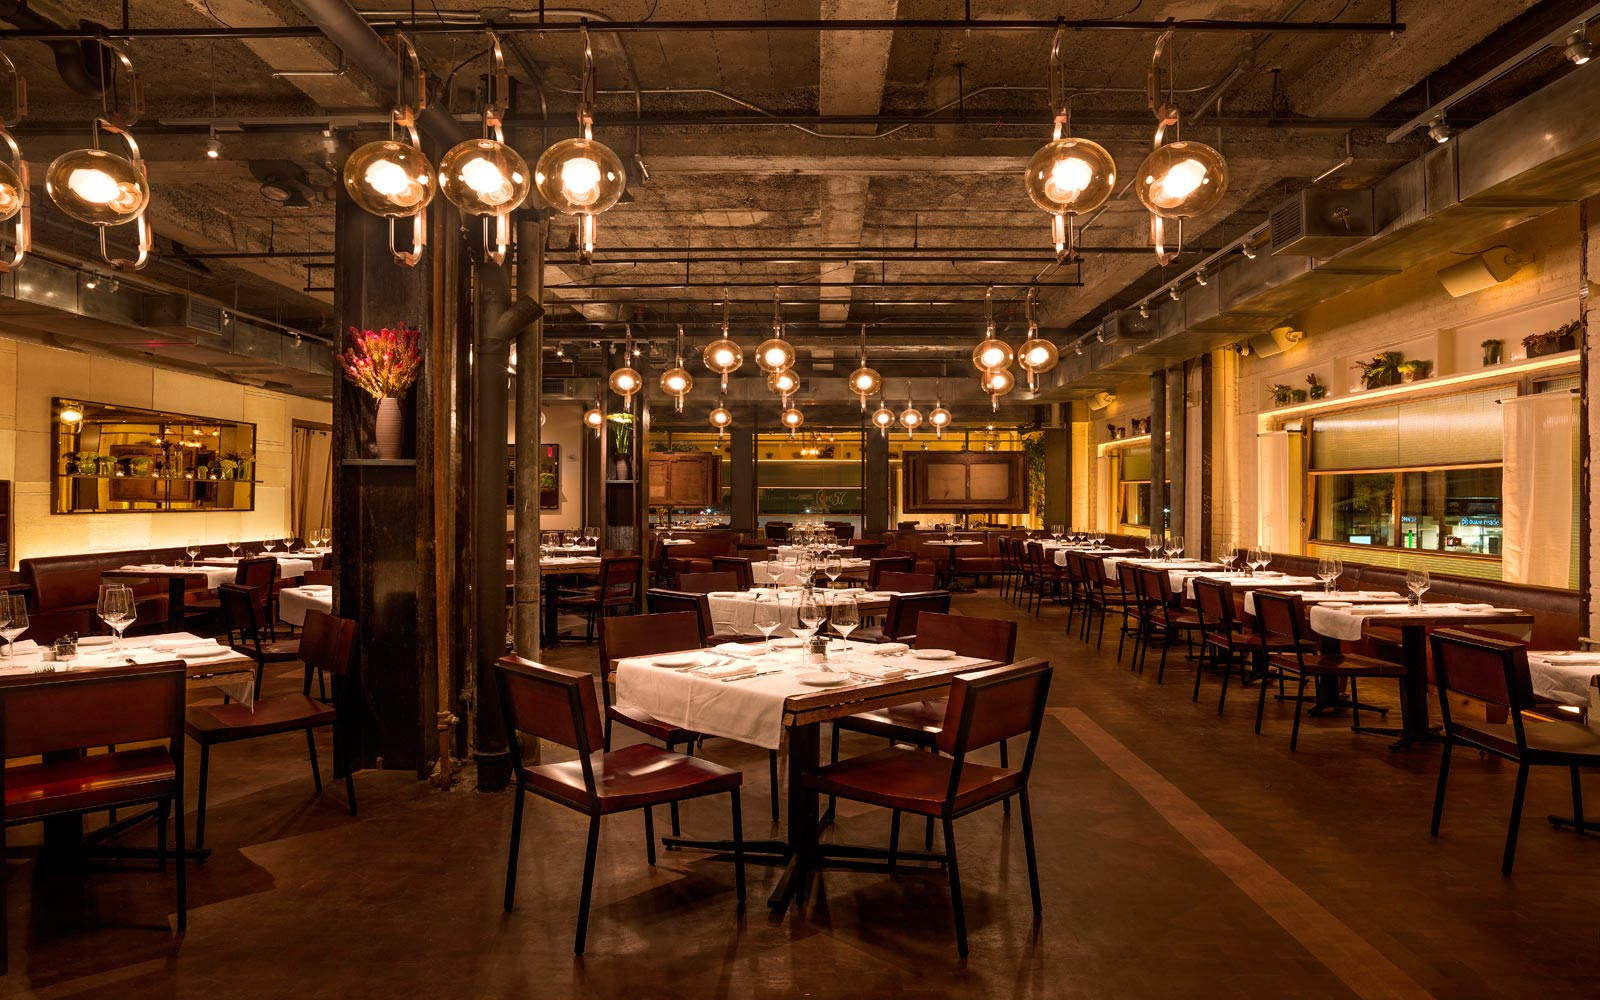 Italian Restaurant Design Quarter Quality Italian Midtown New York The Infatuation